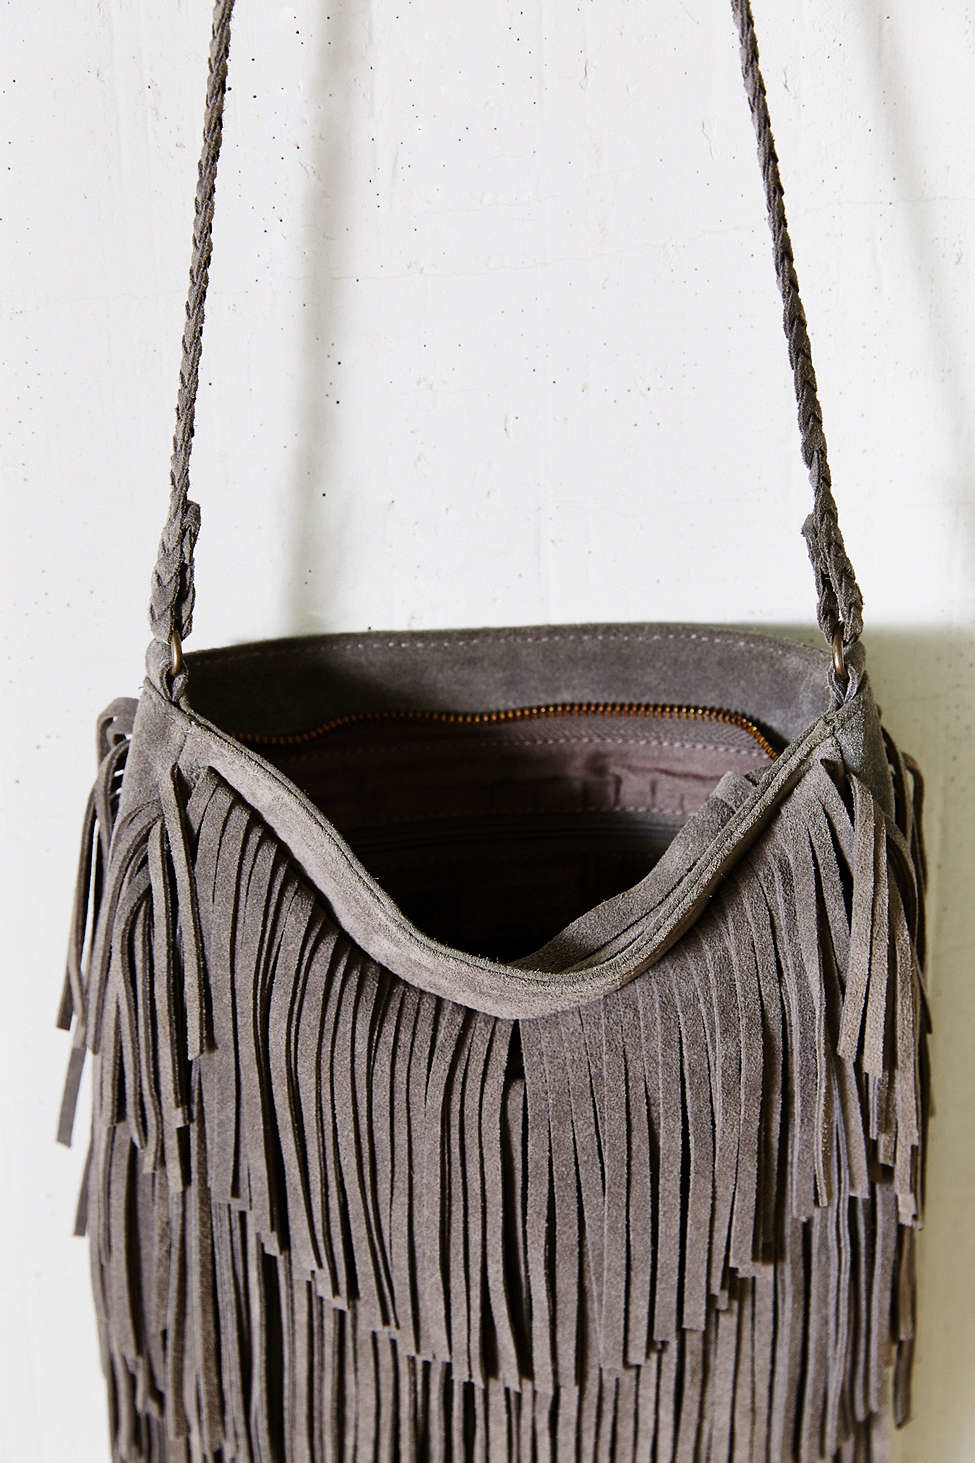 Lyst - Ecote Suede Layered Fringe Crossbody Bag in Gray 5a1d9b90d2a91